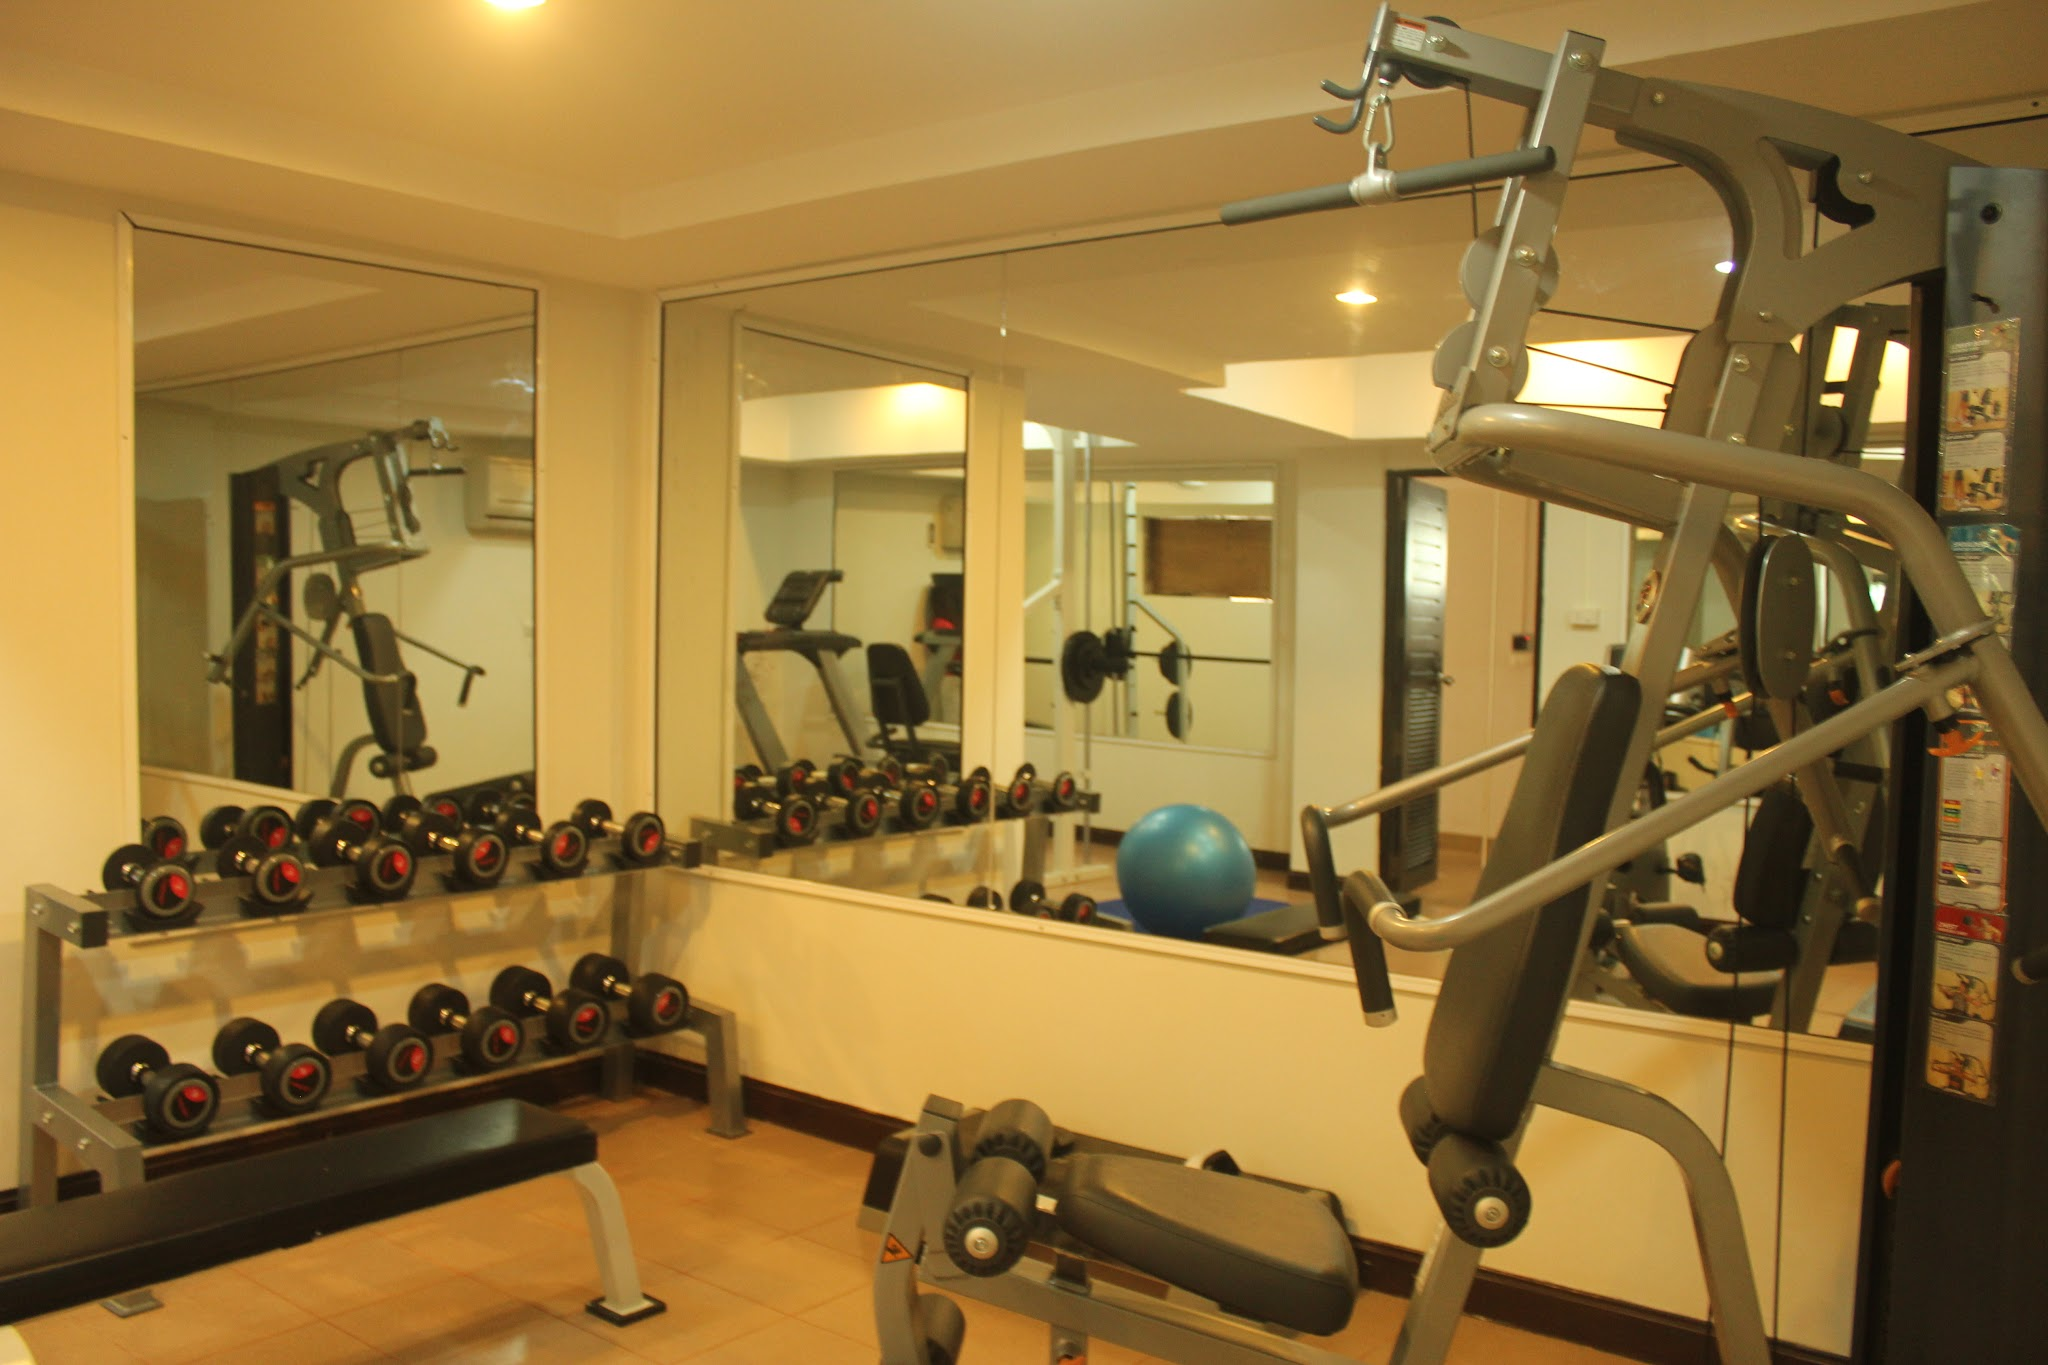 Patong Harbor View Gym and Fitness Area